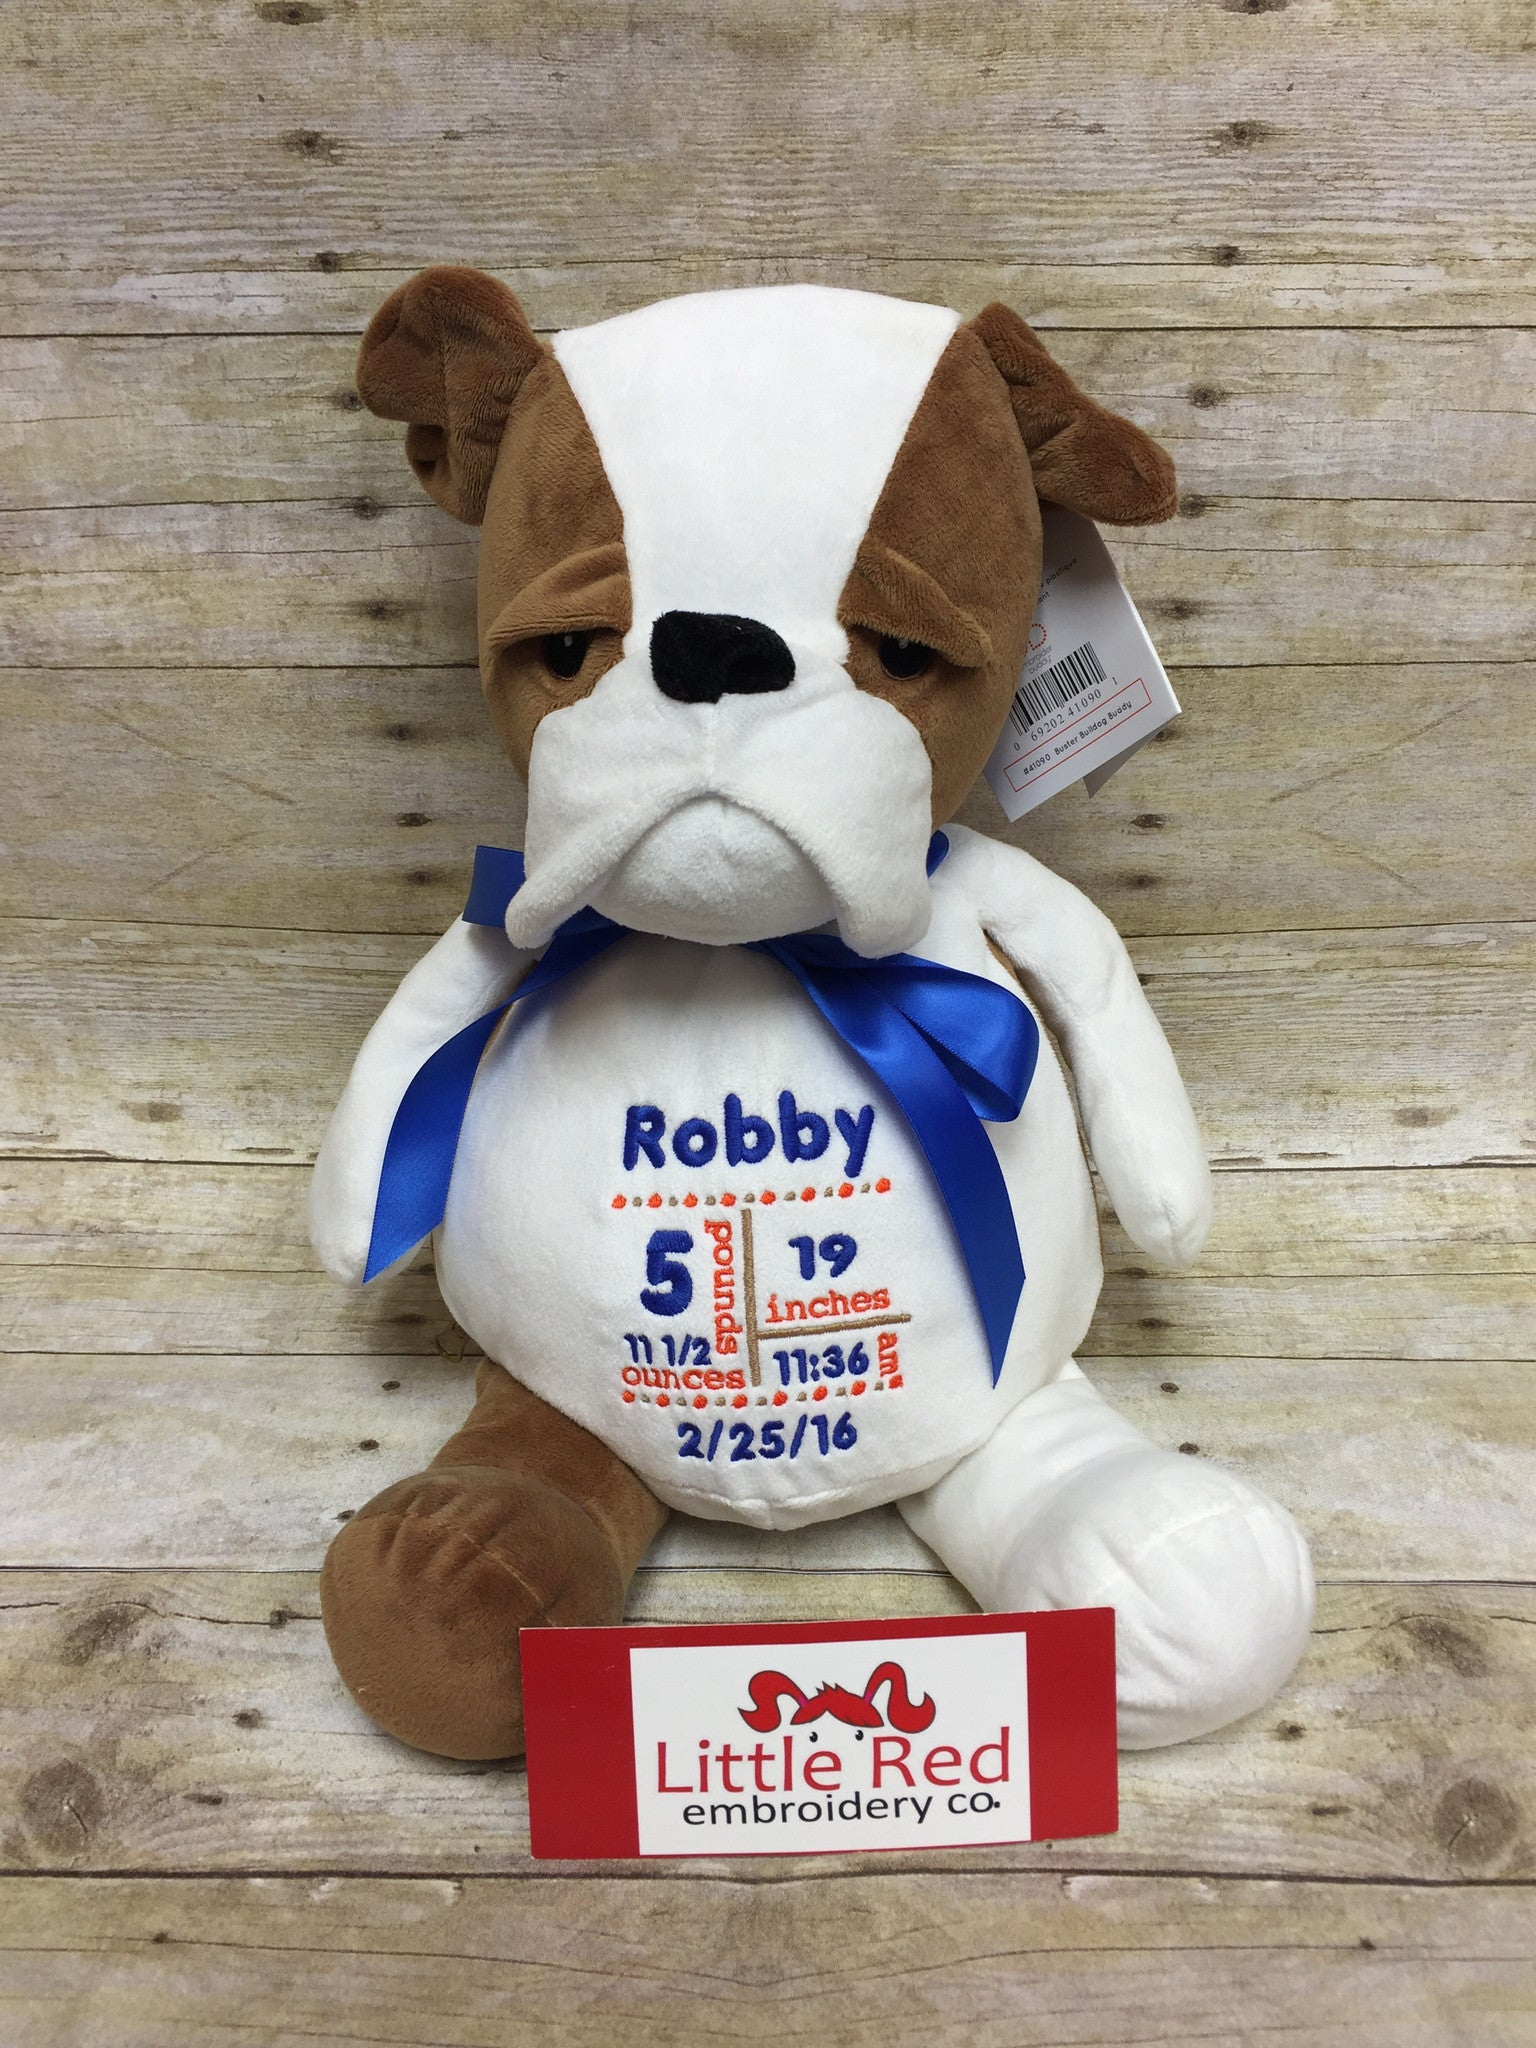 Embroider Buddy Bulldog Stuffie with Custom Embroidery